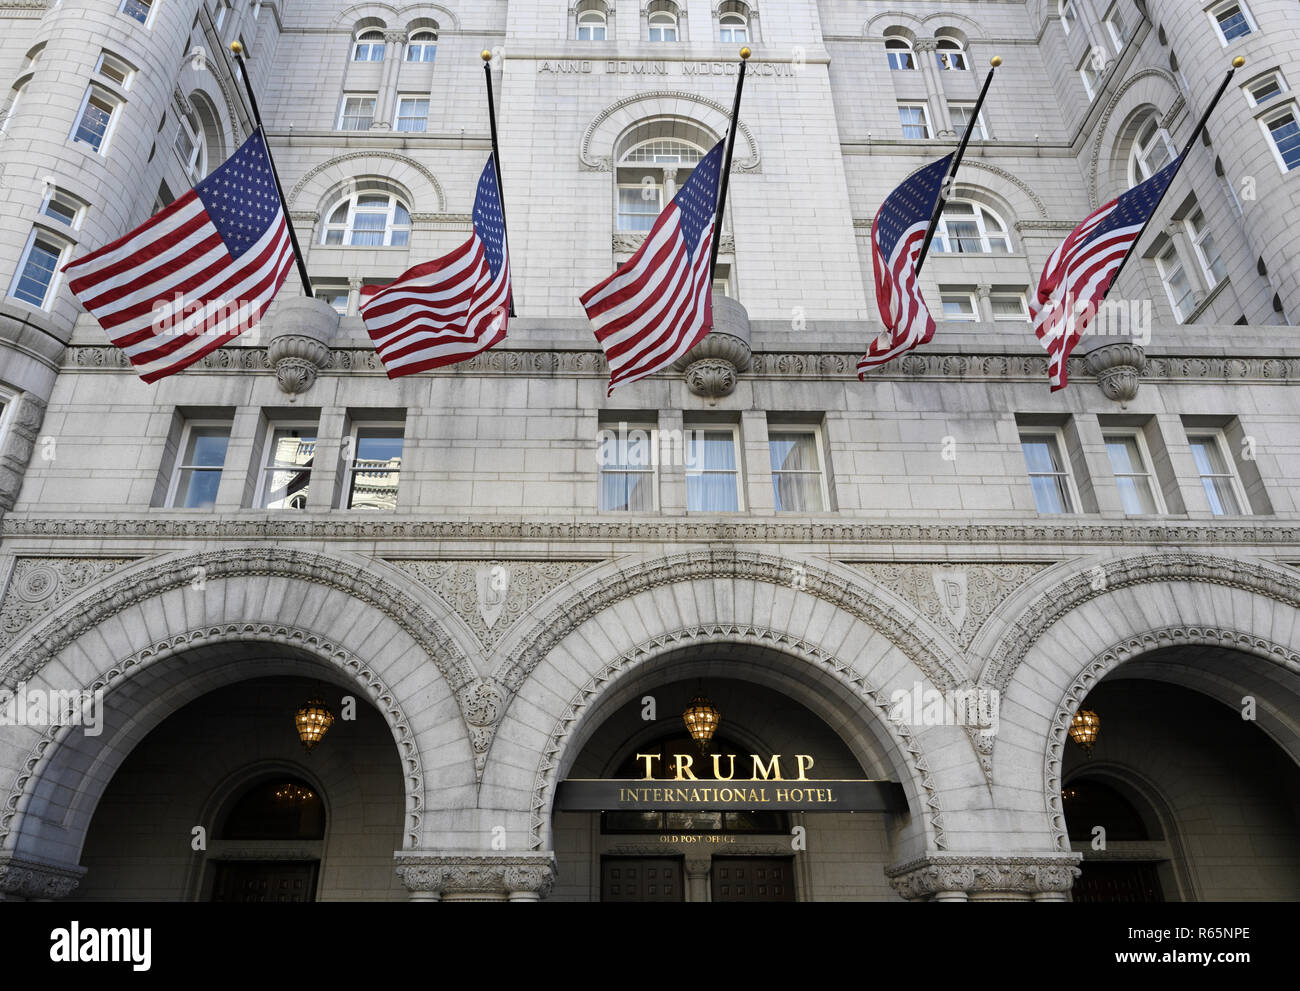 Trump hotel Washington D.C. in the historic Old Post Office - Stock Image